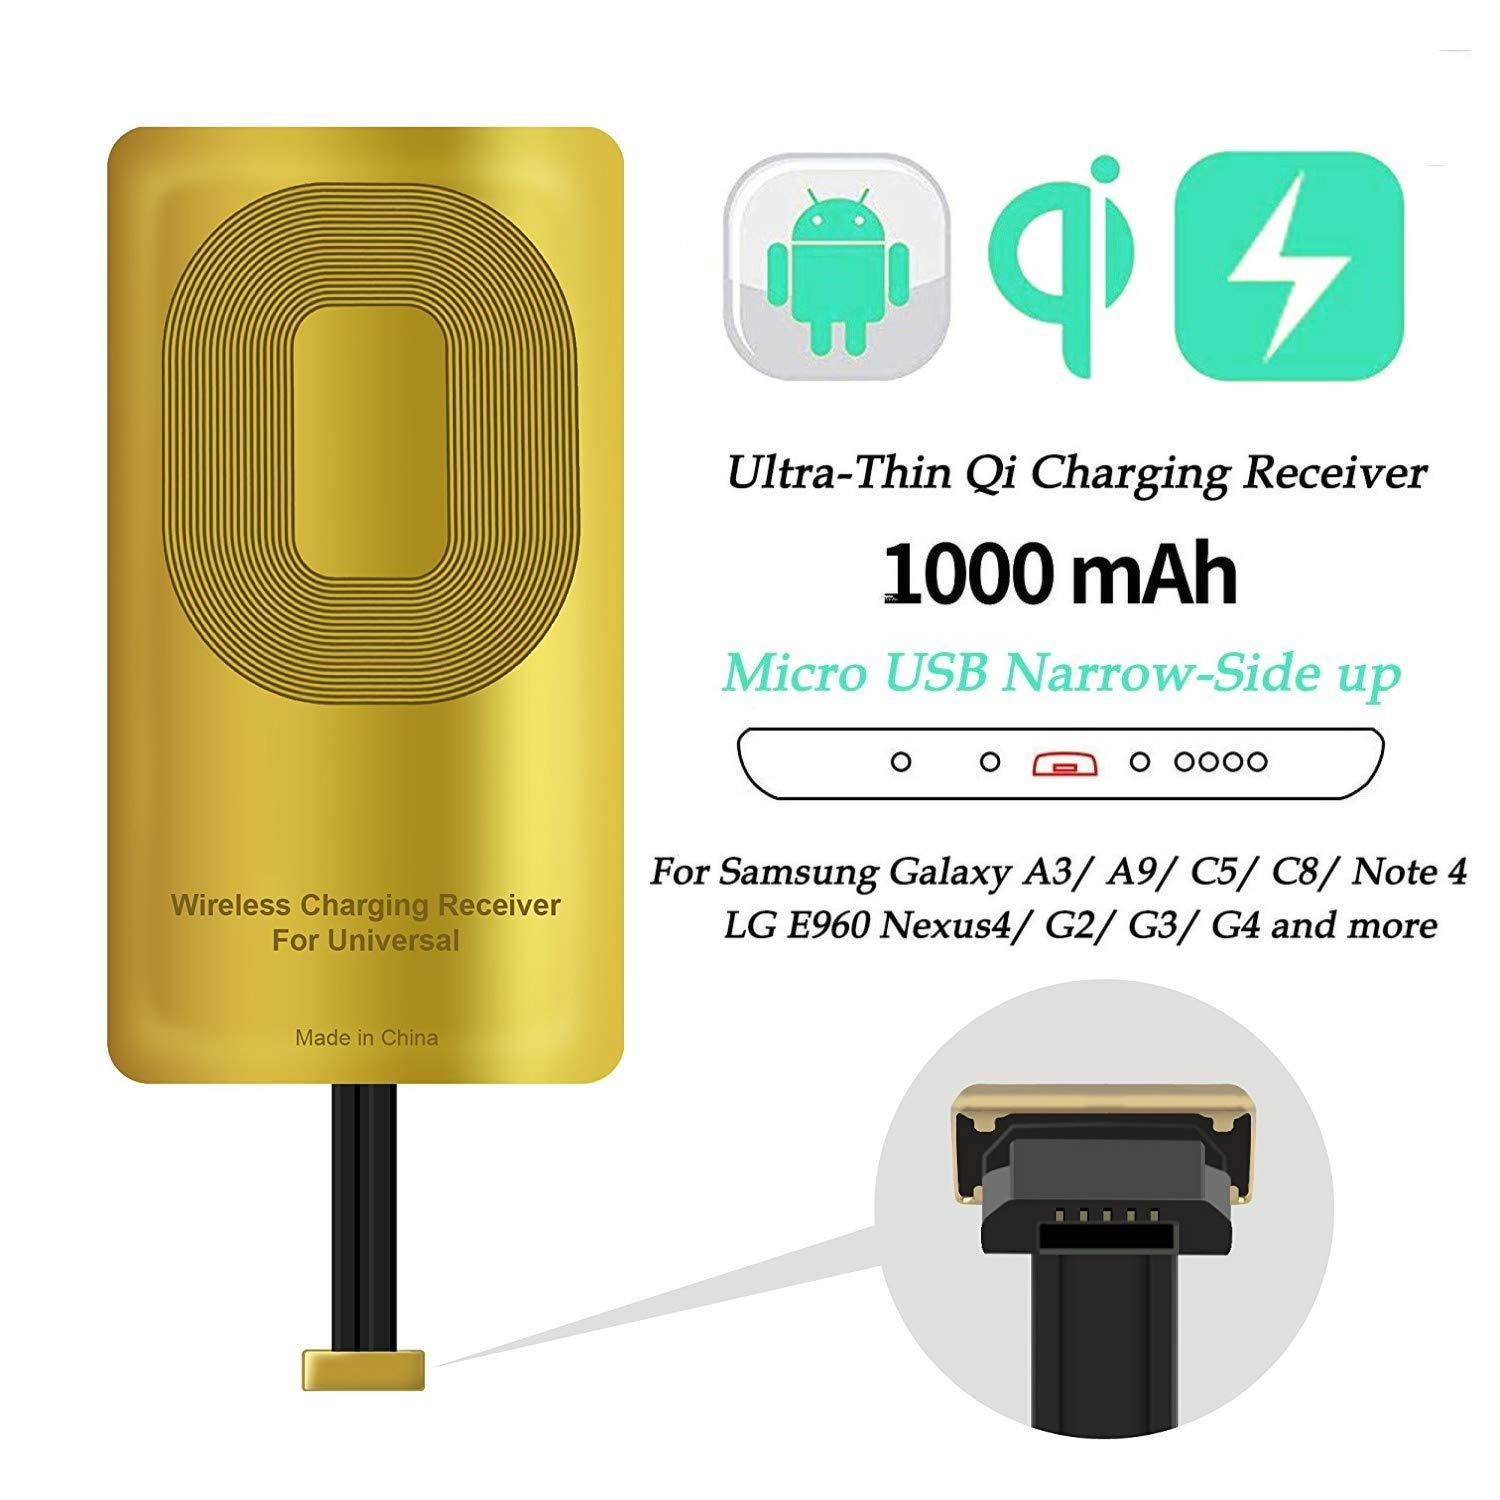 Positive Direction Type A Receiver Wireless Charger Receiver IGOUKJ Ultra Slim Portable Endurable Narrow Interface Up Positive Wireless Charging Receiver for Universal Android Micro USB Port Phone